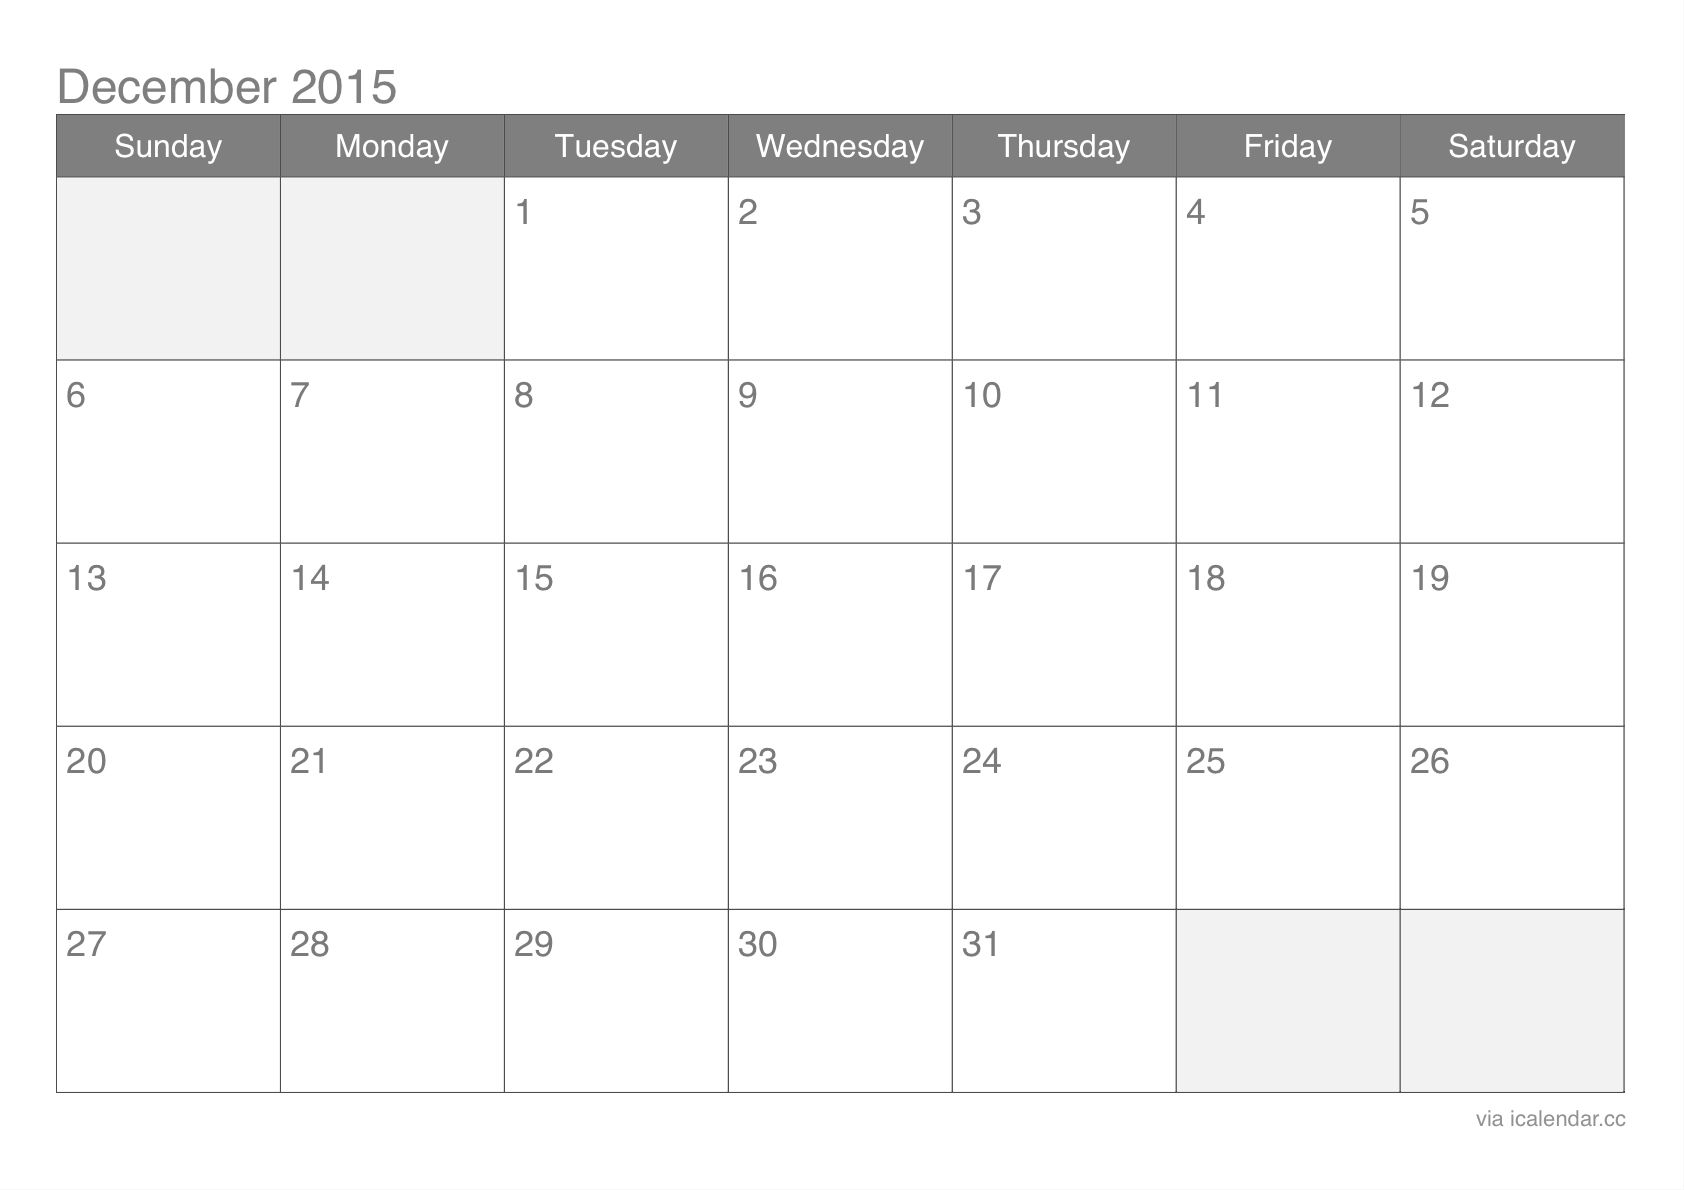 december 2015 downloadable calendar